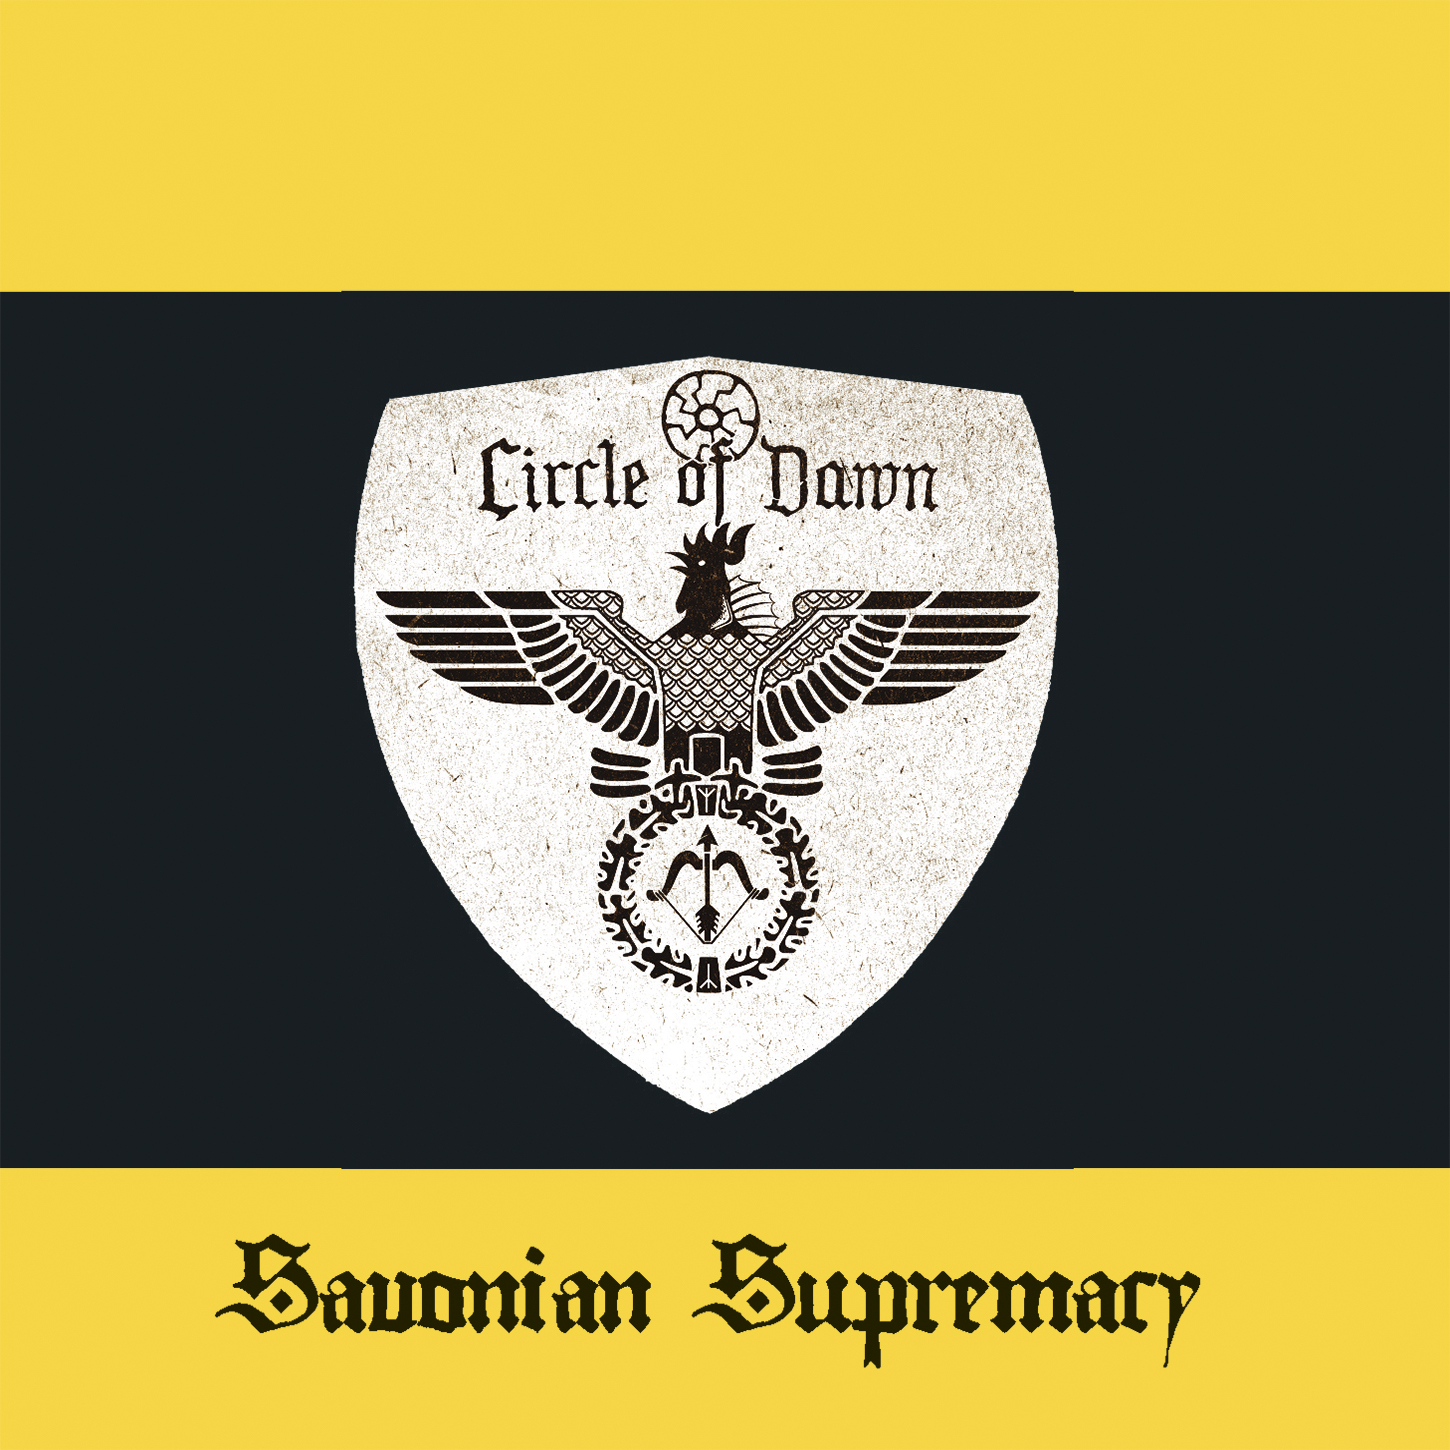 Circle of Dawn - Savonian Supremacy  (Superjewelcase)